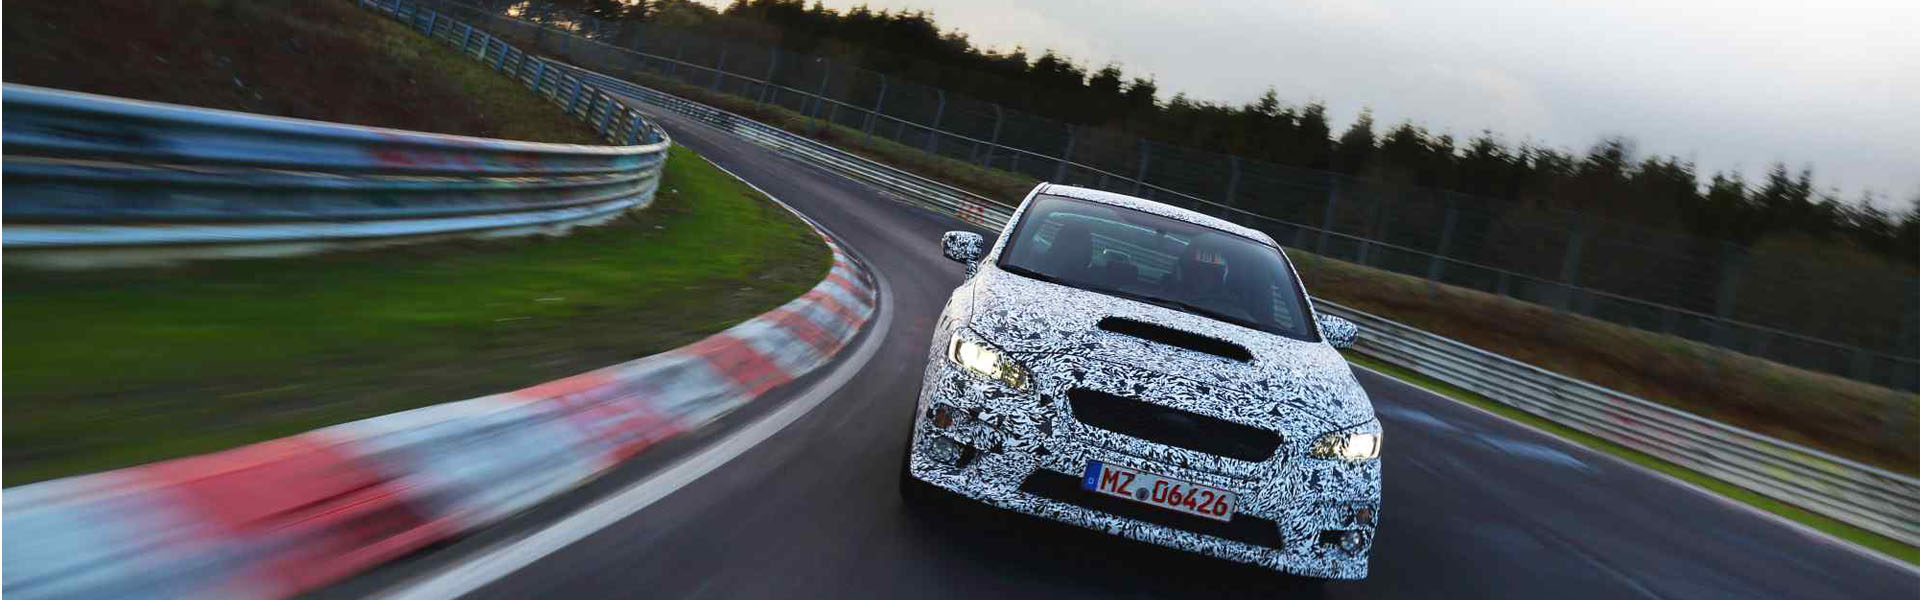 WRX-STI-MY16-Headerbild-2